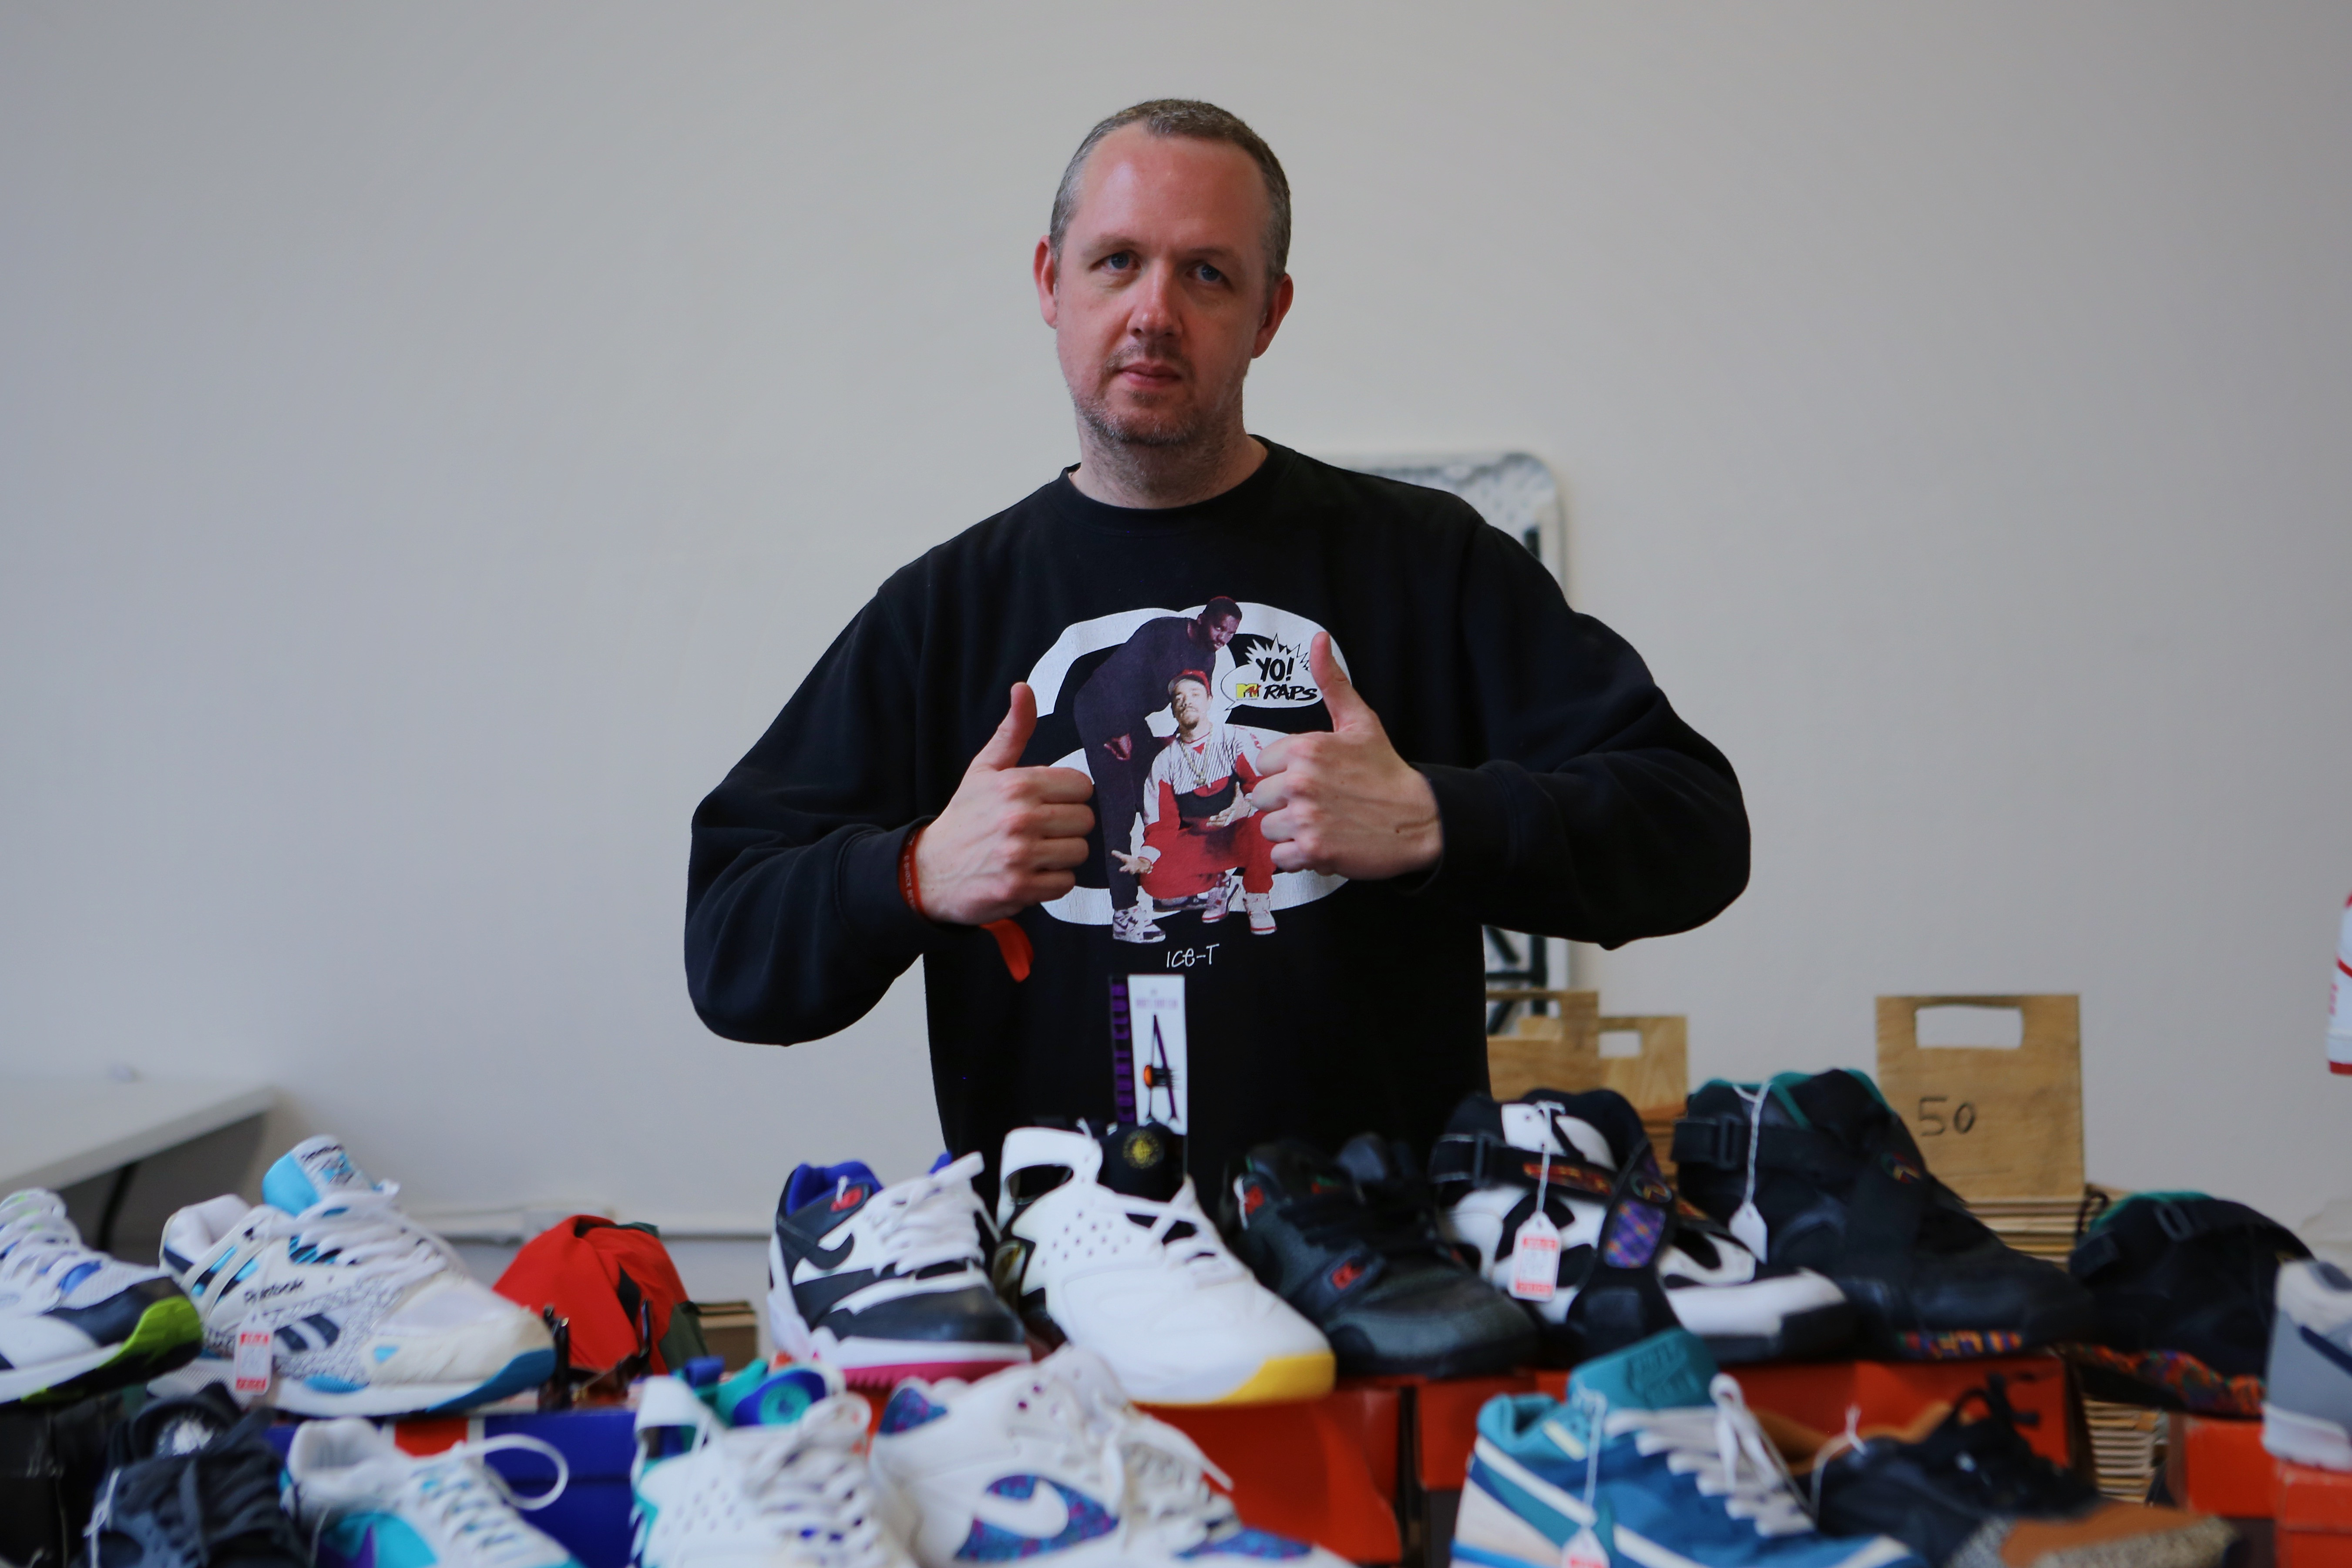 5 Sneaker Resellers Share Tips on the